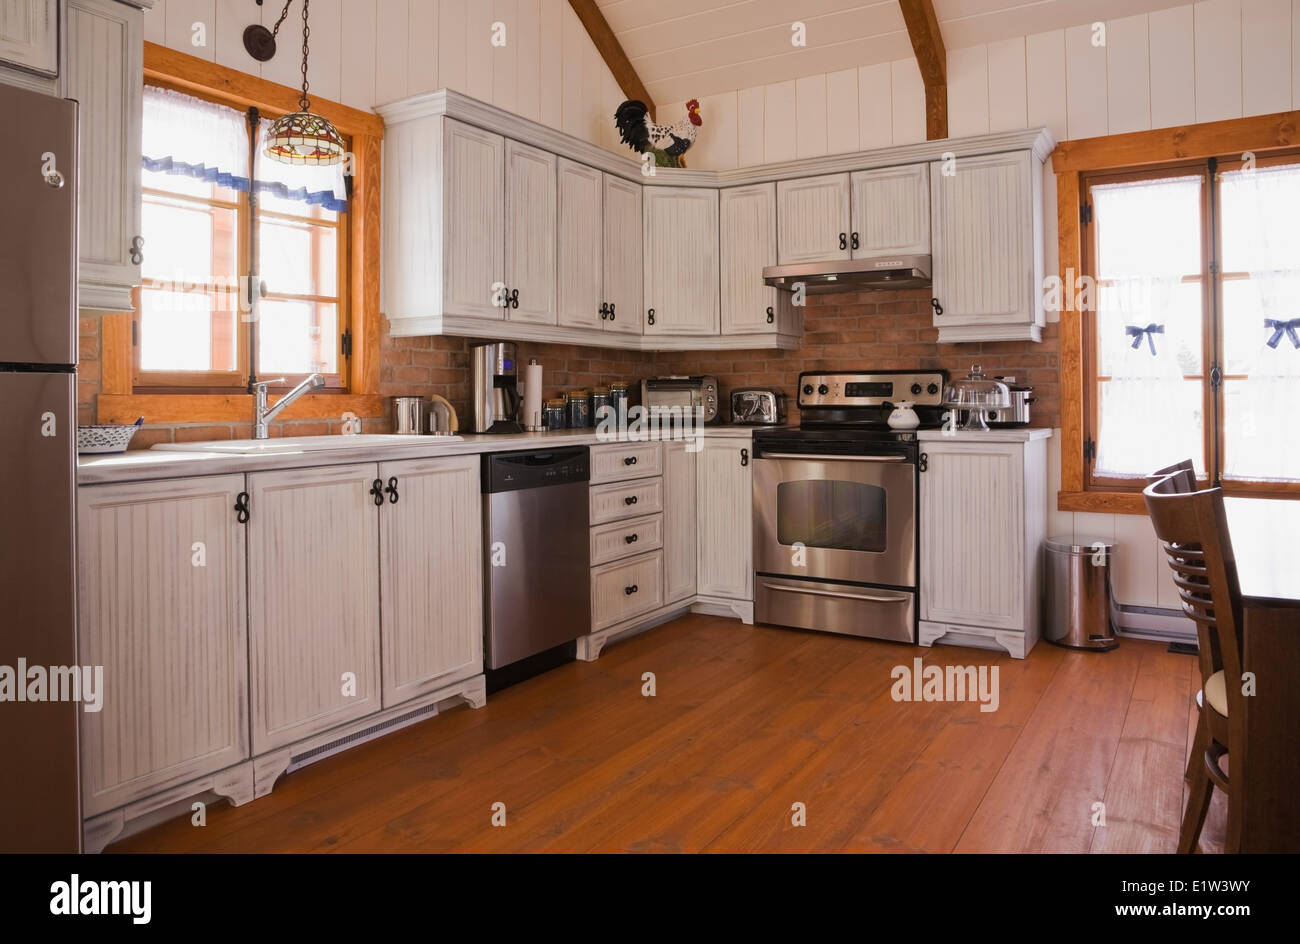 Country Style Kitchen Inside The Extension A Canadiana Cottage Fieldstone Residential Home Built To Look Old In 2002